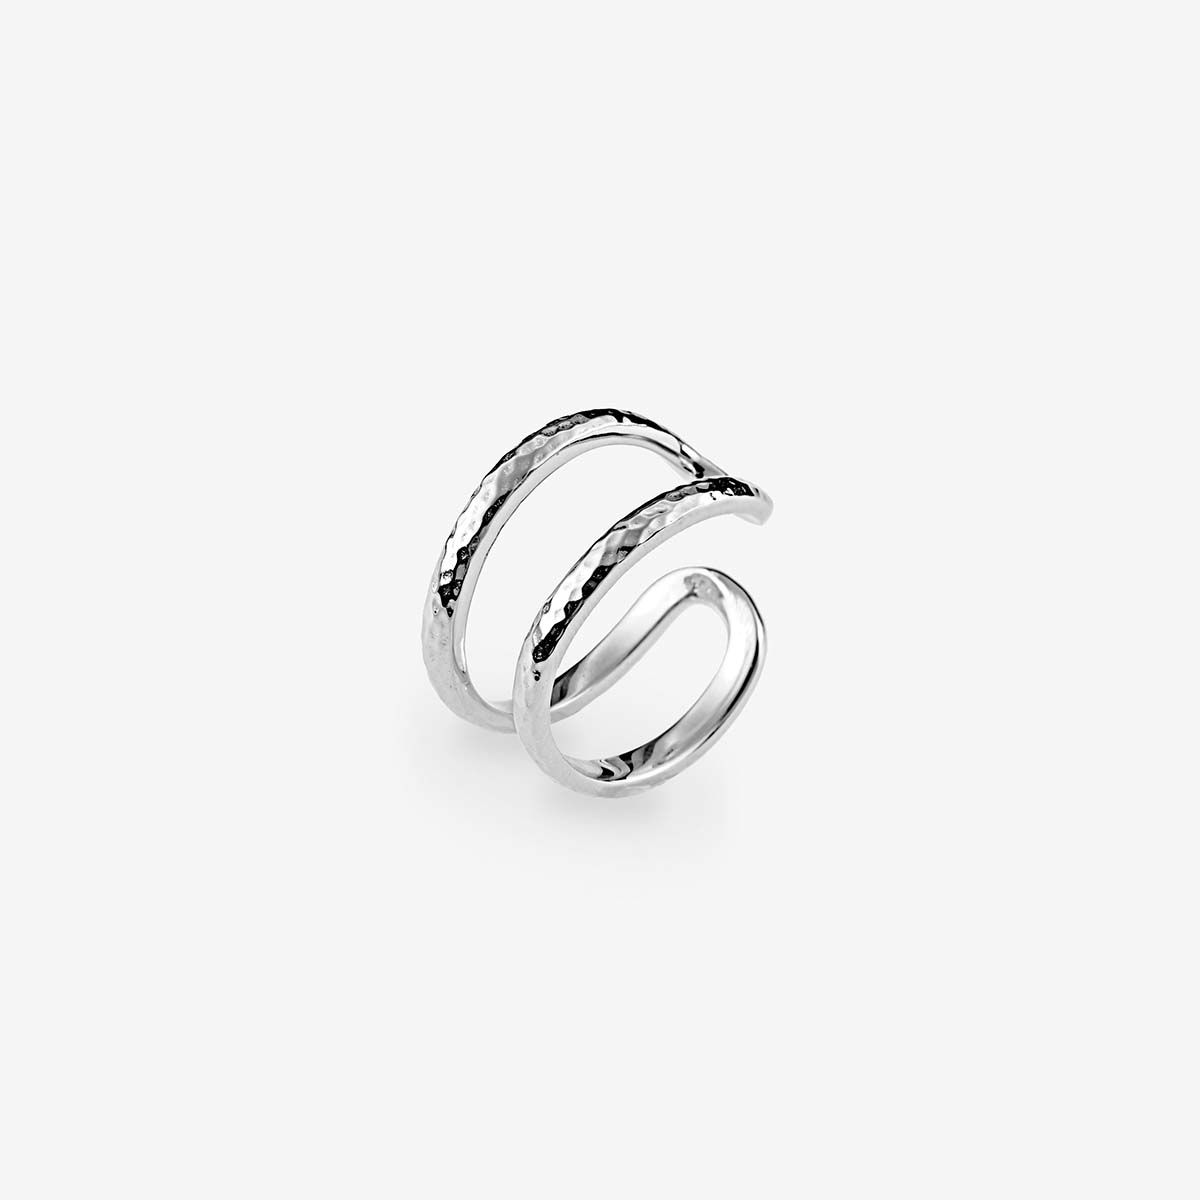 Double ring - Ringe - Silber